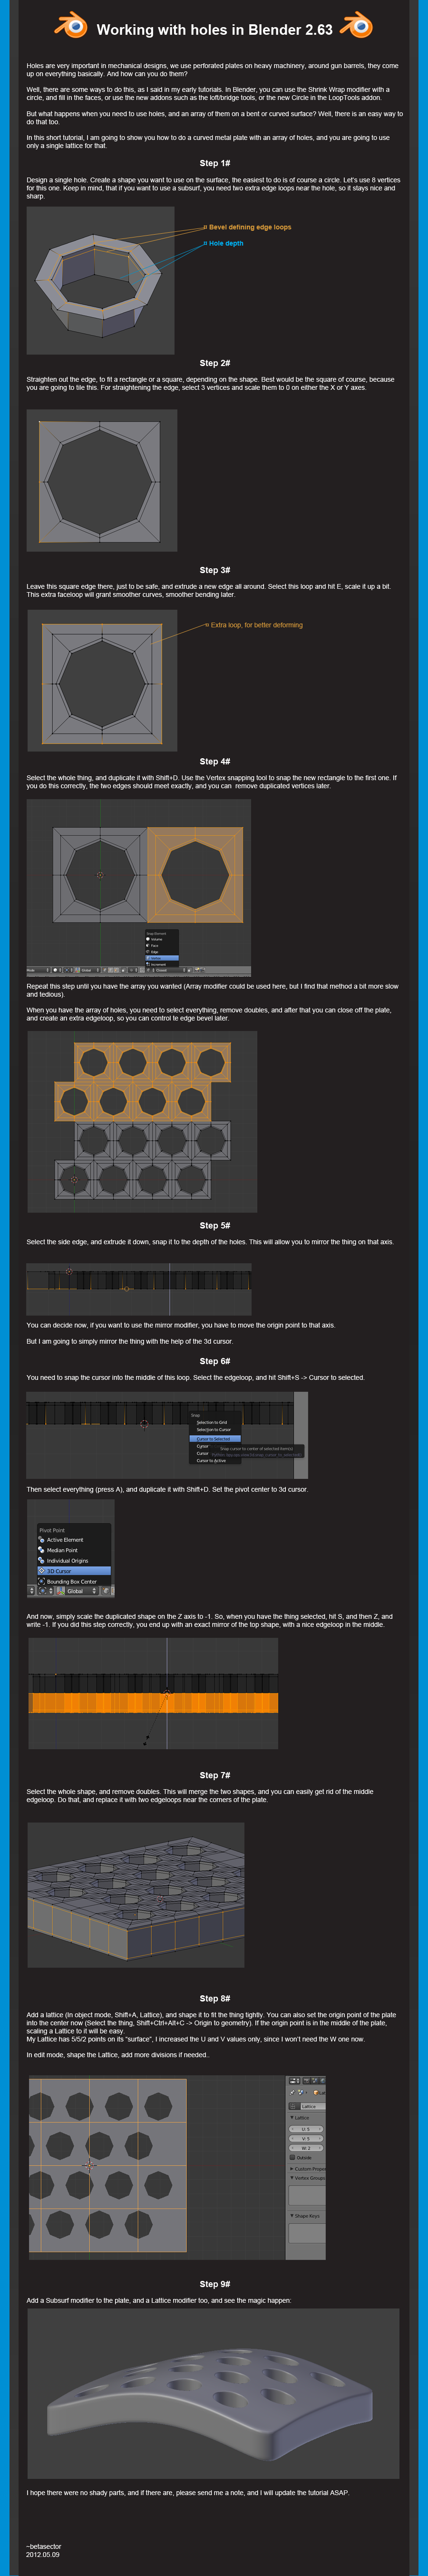 Hole magic tutorial by betasector